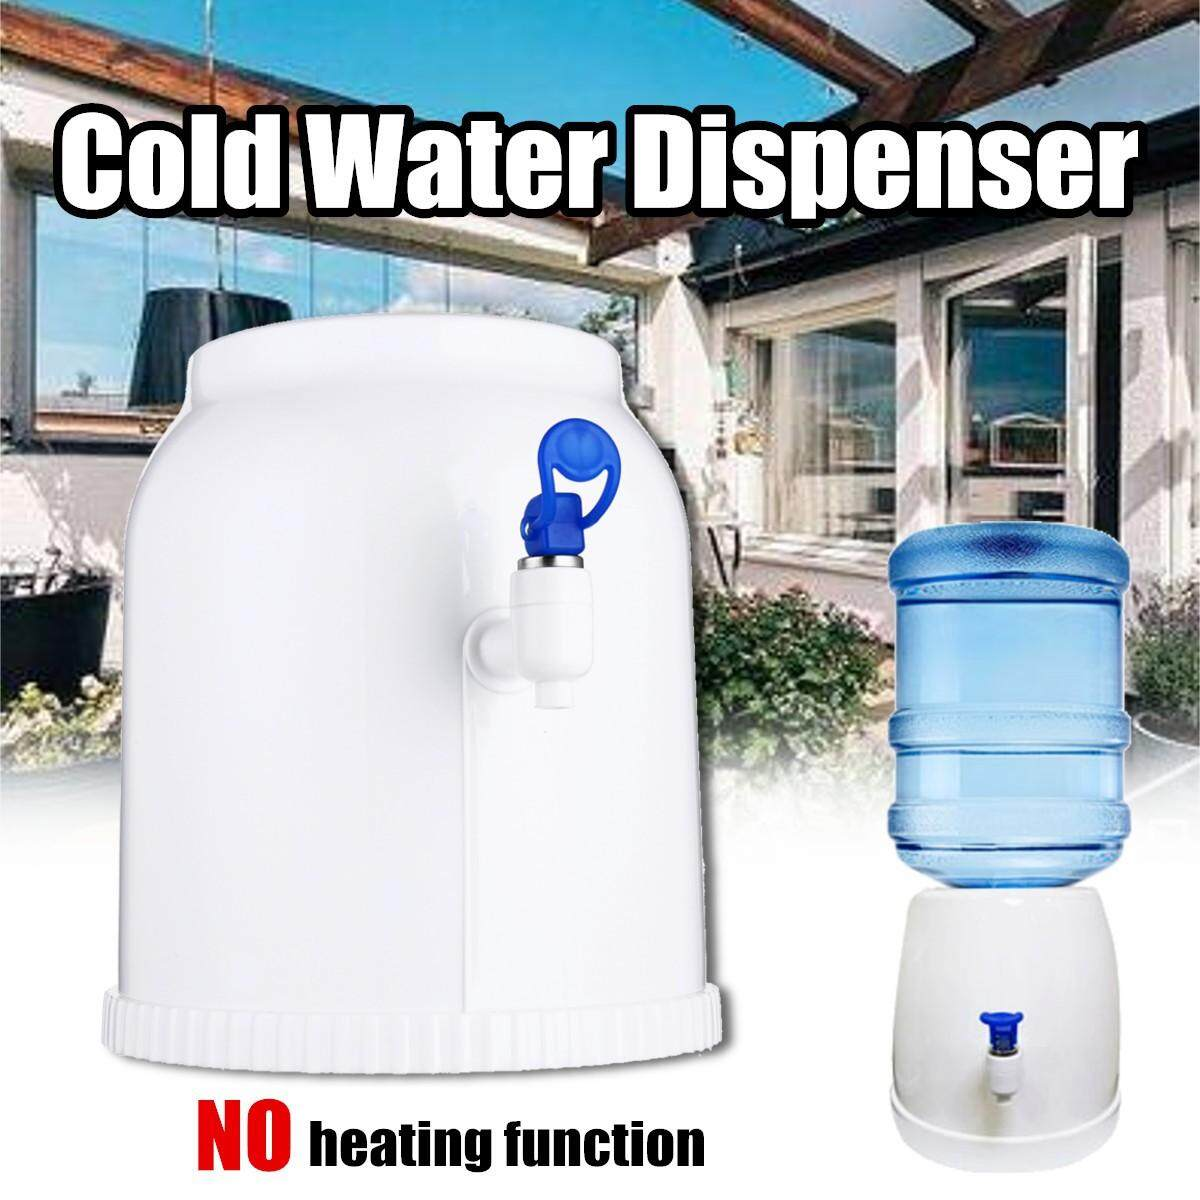 Desktop Cold Water Dispenser Gallon Drinking Bottle Portable Countertop Cooler Drinking Faucet Tool Press Water Pumping Device